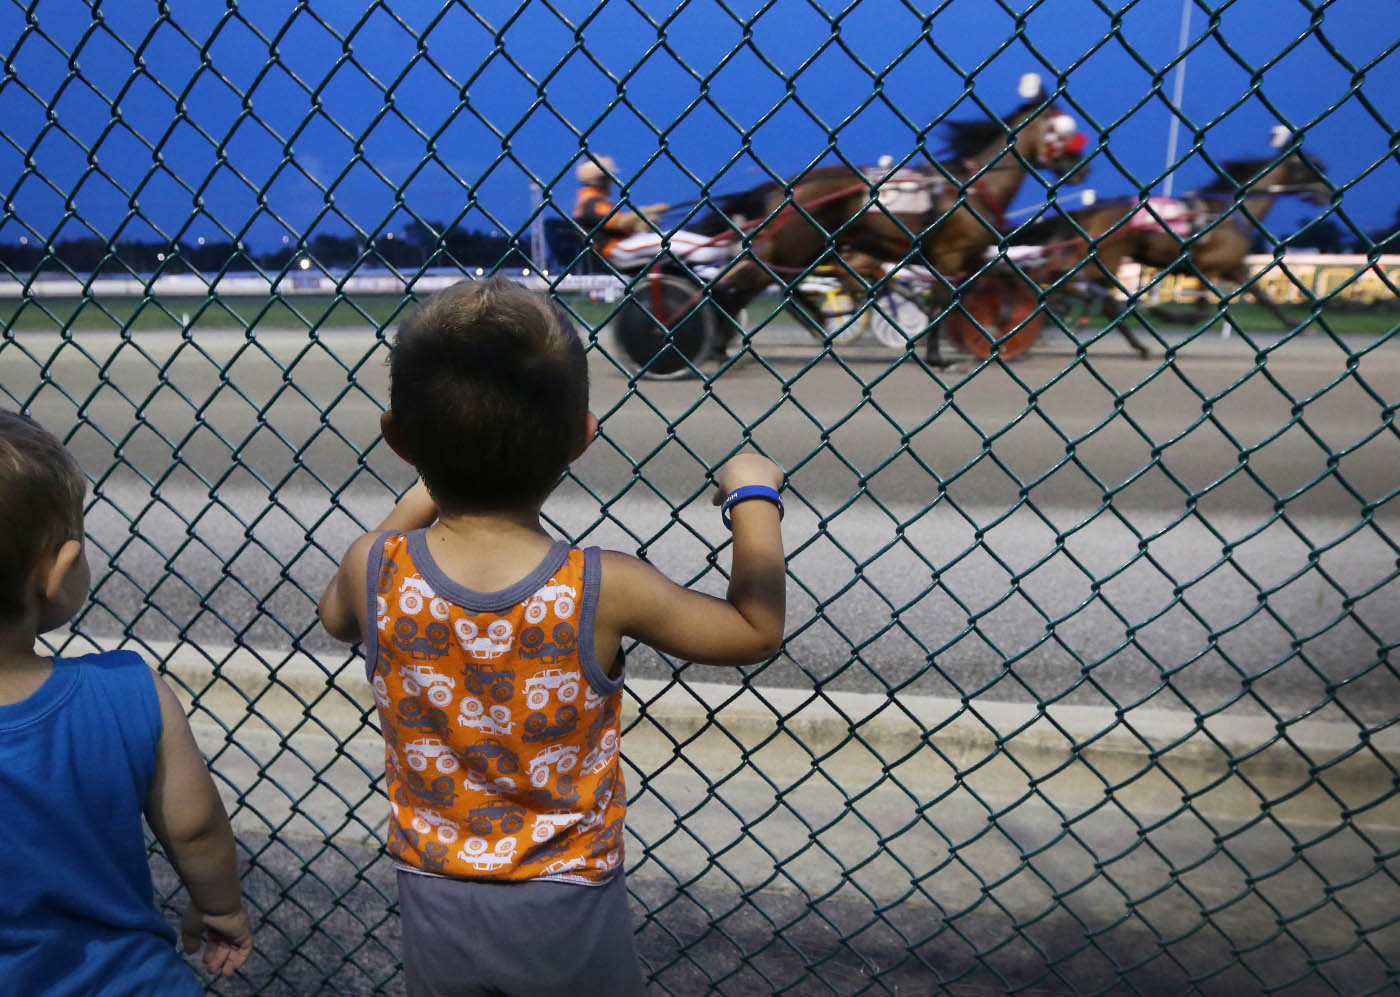 Families and individuals come out for a Wednesday night of horse racing at Batavia Downs, the oldest lighted harness track in the US, Wednesday, Sept. 7, 2016. Kenny Whitcroft, 3, left, and Kevin Horgan, 2, watch their great uncle race. (Sharon Cantillon/Buffalo News)